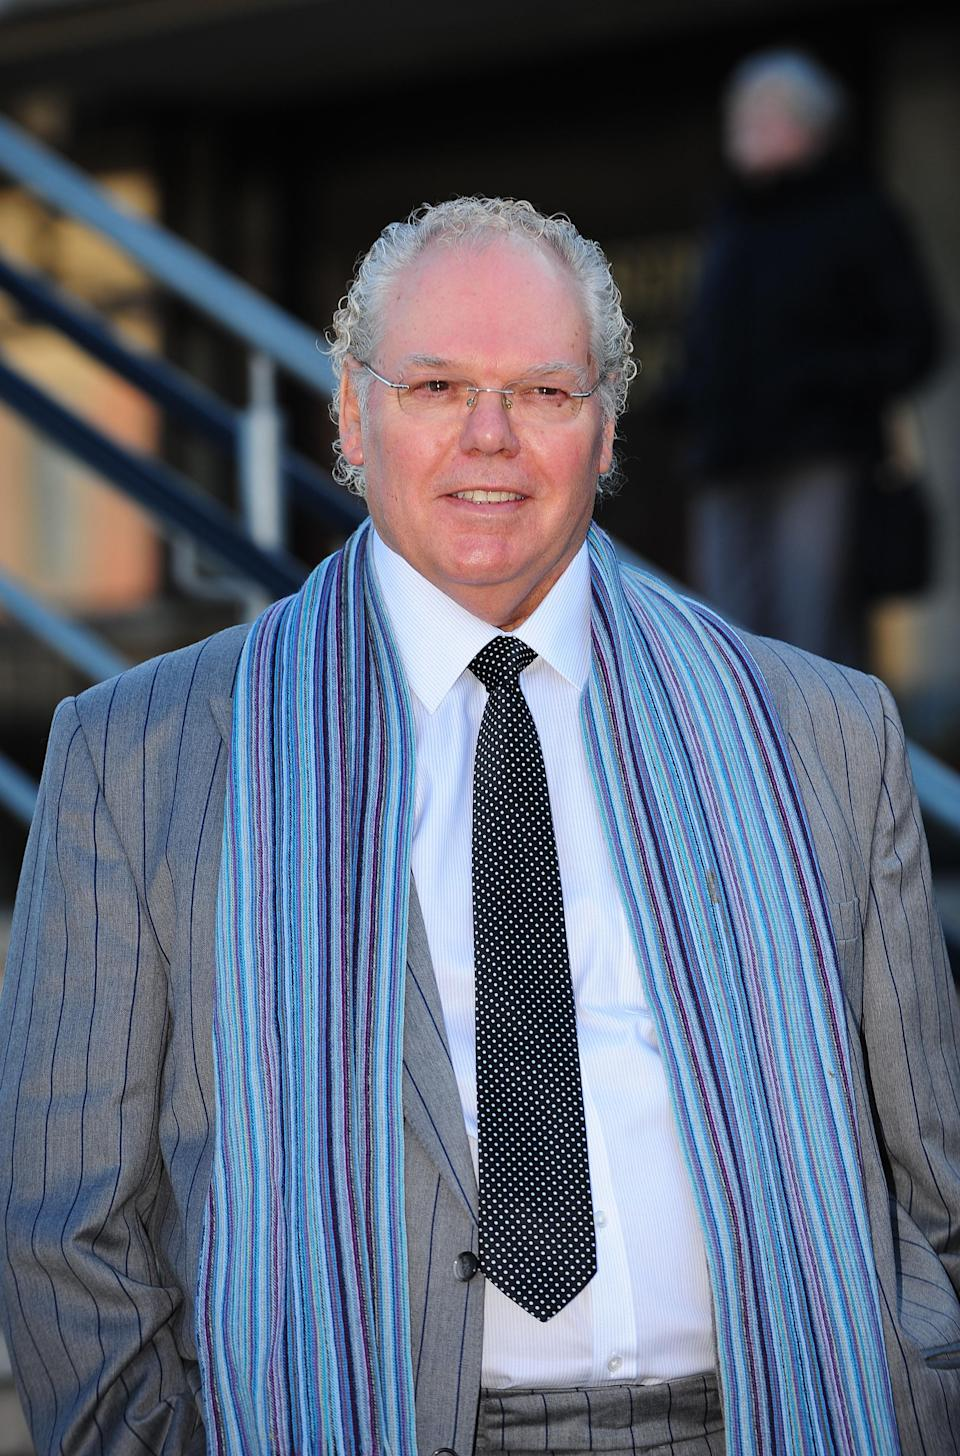 Roy 'Chubby' Brown, real name Royston Vasey, outside Teesside Magistrates' Court where he faces charges of common assault.